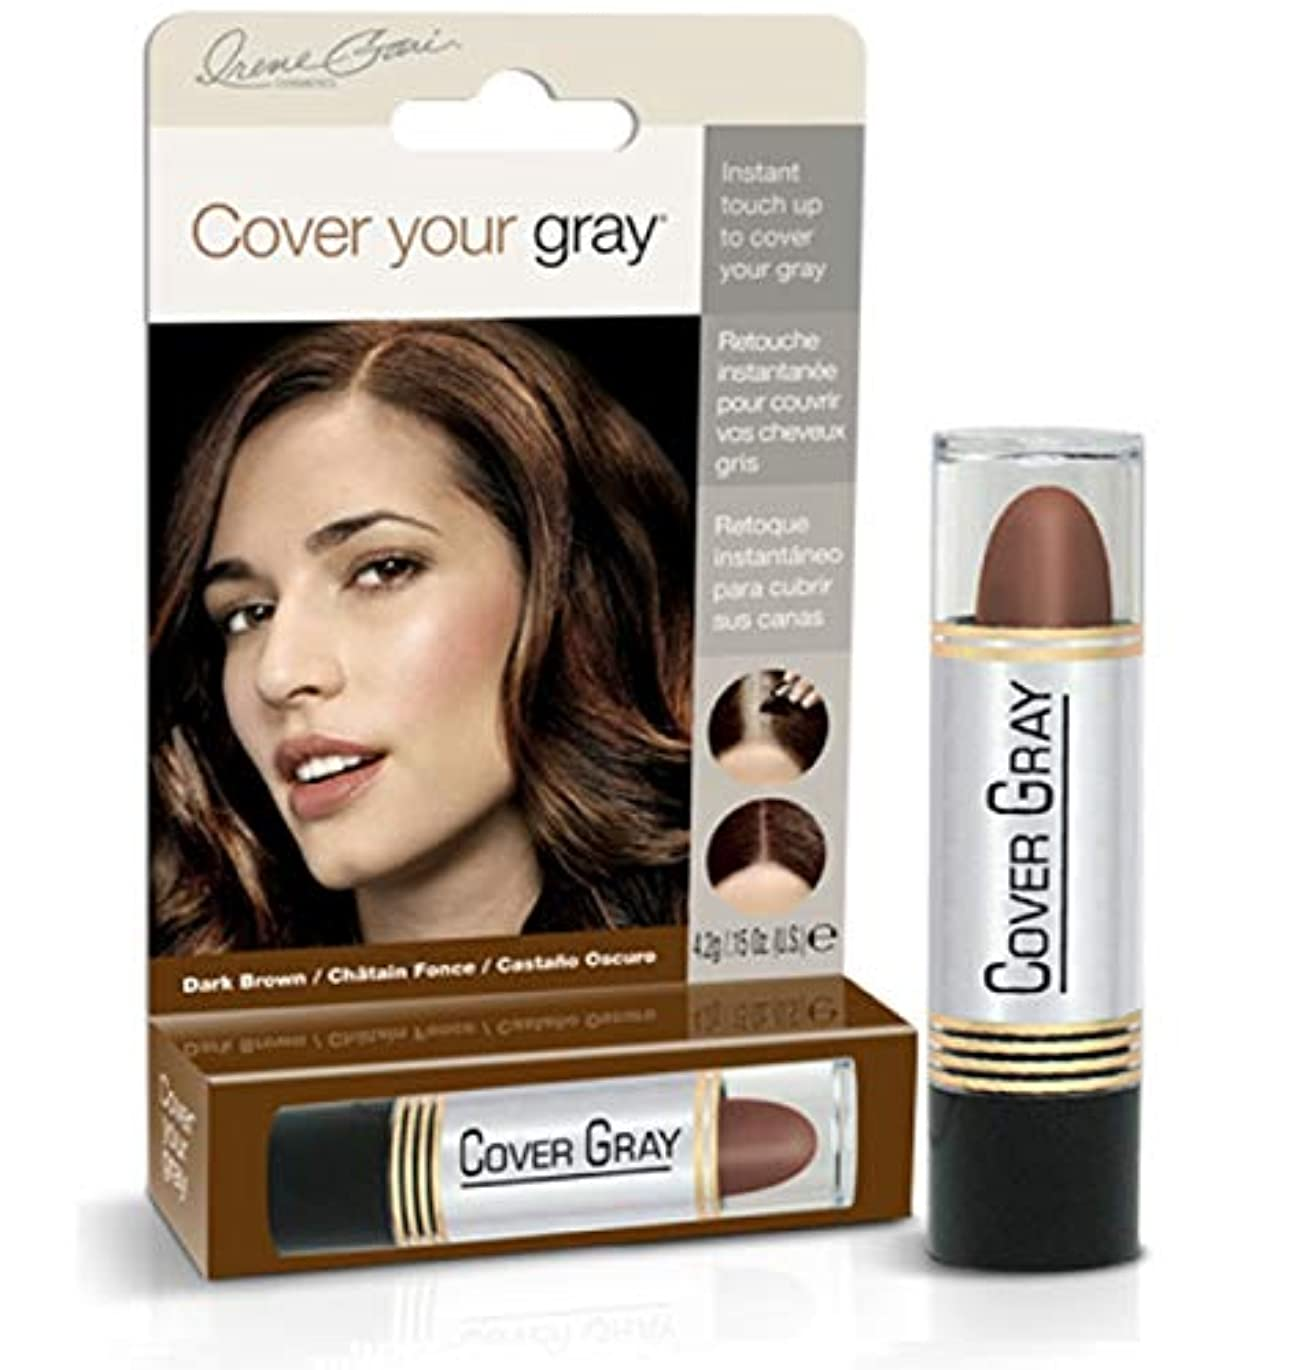 しみスリッパ栄光Cover Your Gray Stick Dark Brown 44 ml. (Pack of 6) (並行輸入品)